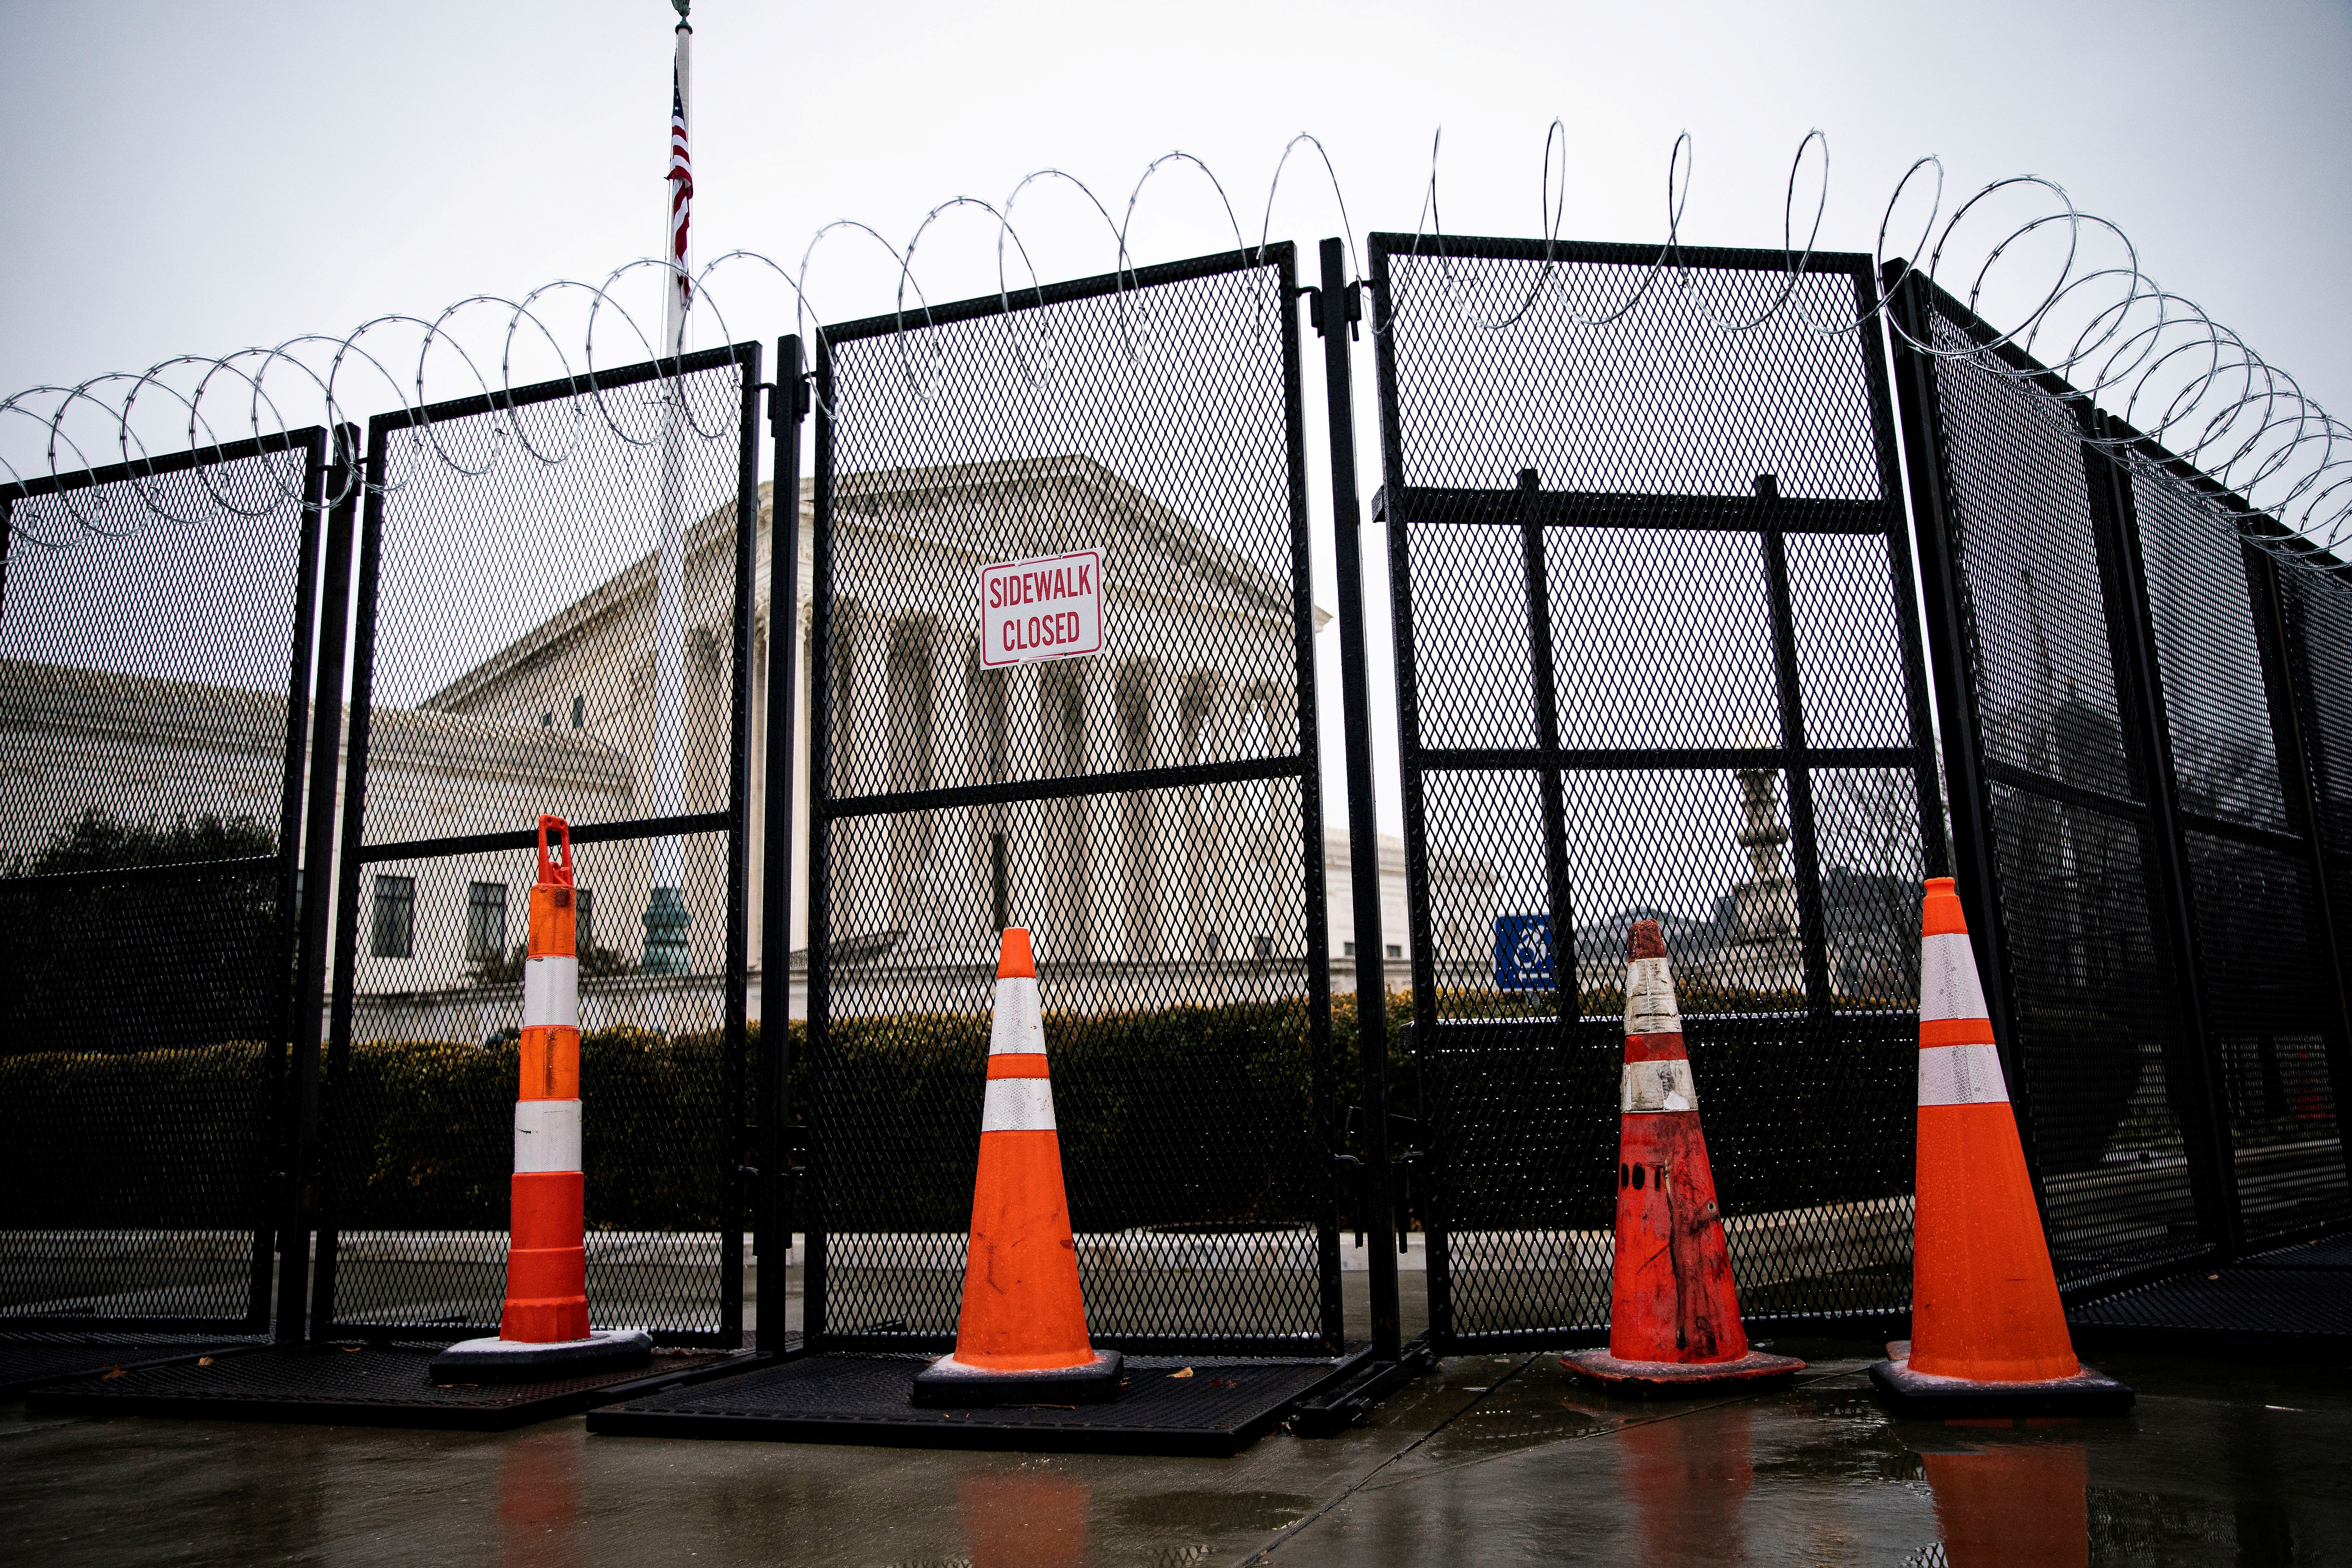 Barbed wire and security fencing surrounds the U.S. Supreme Court in Washington, U.S., January 26, 2021. REUTERS/Al Drago/File Photo